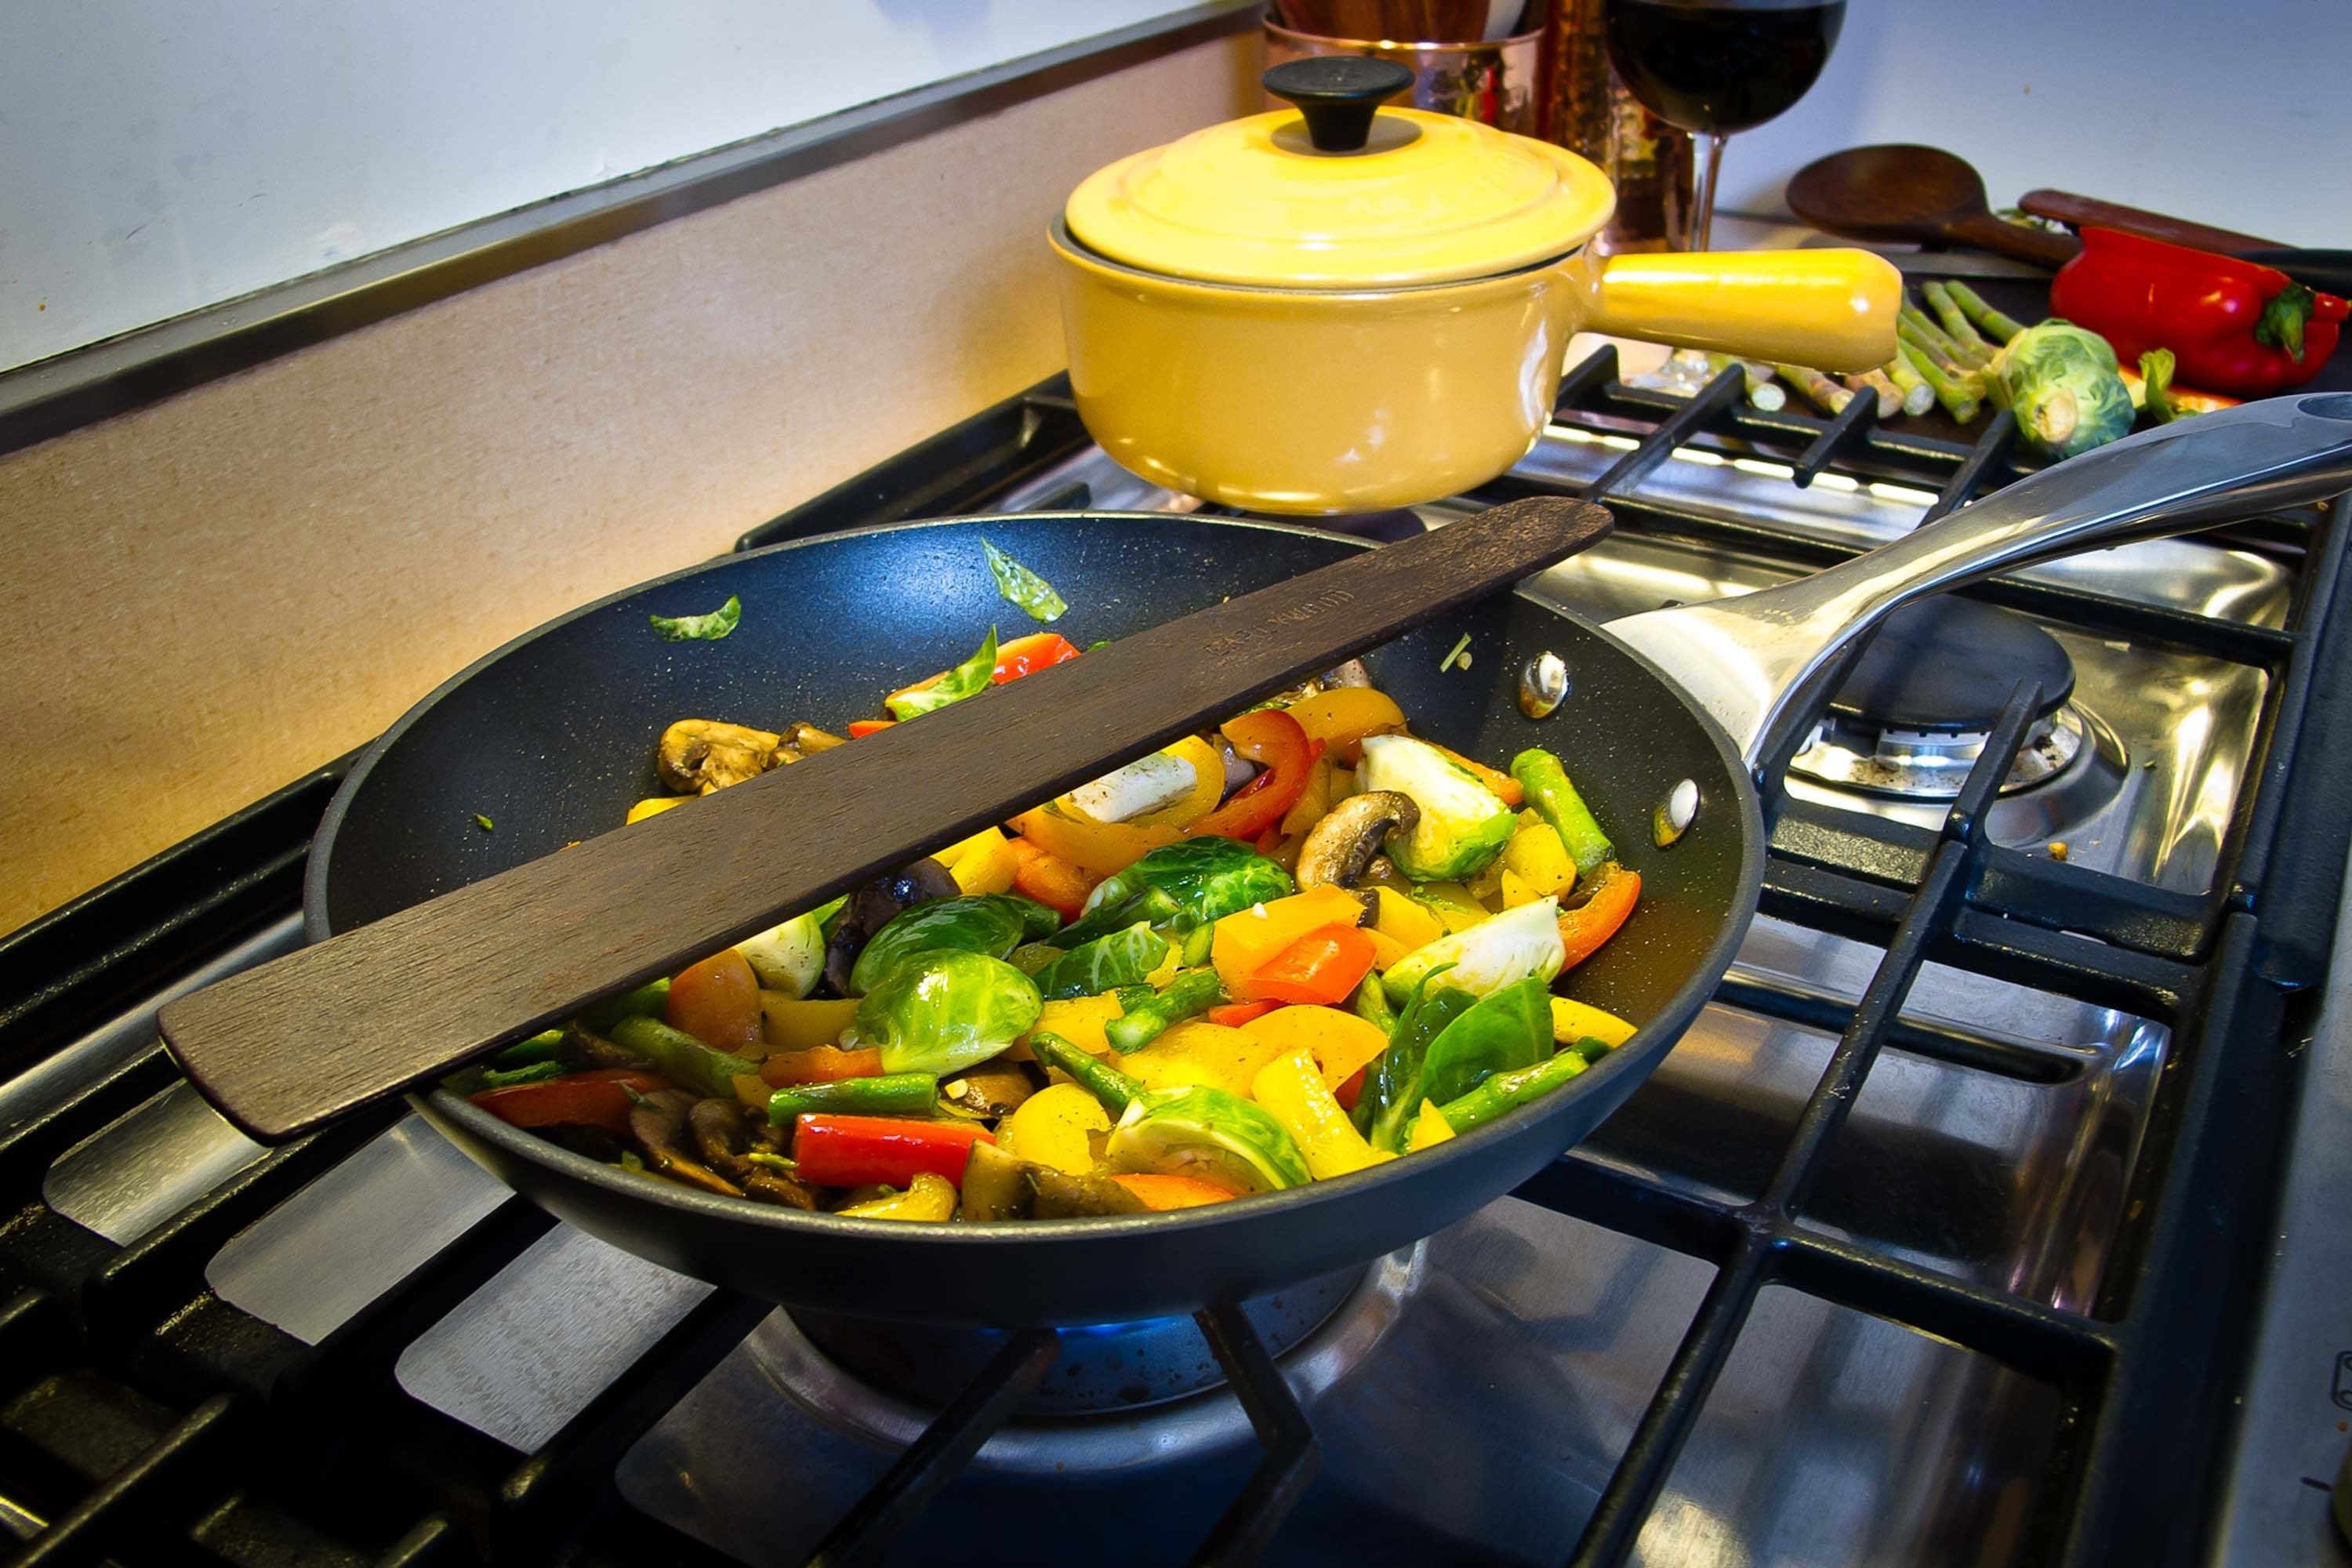 Stir frying using wooden flat saute tool